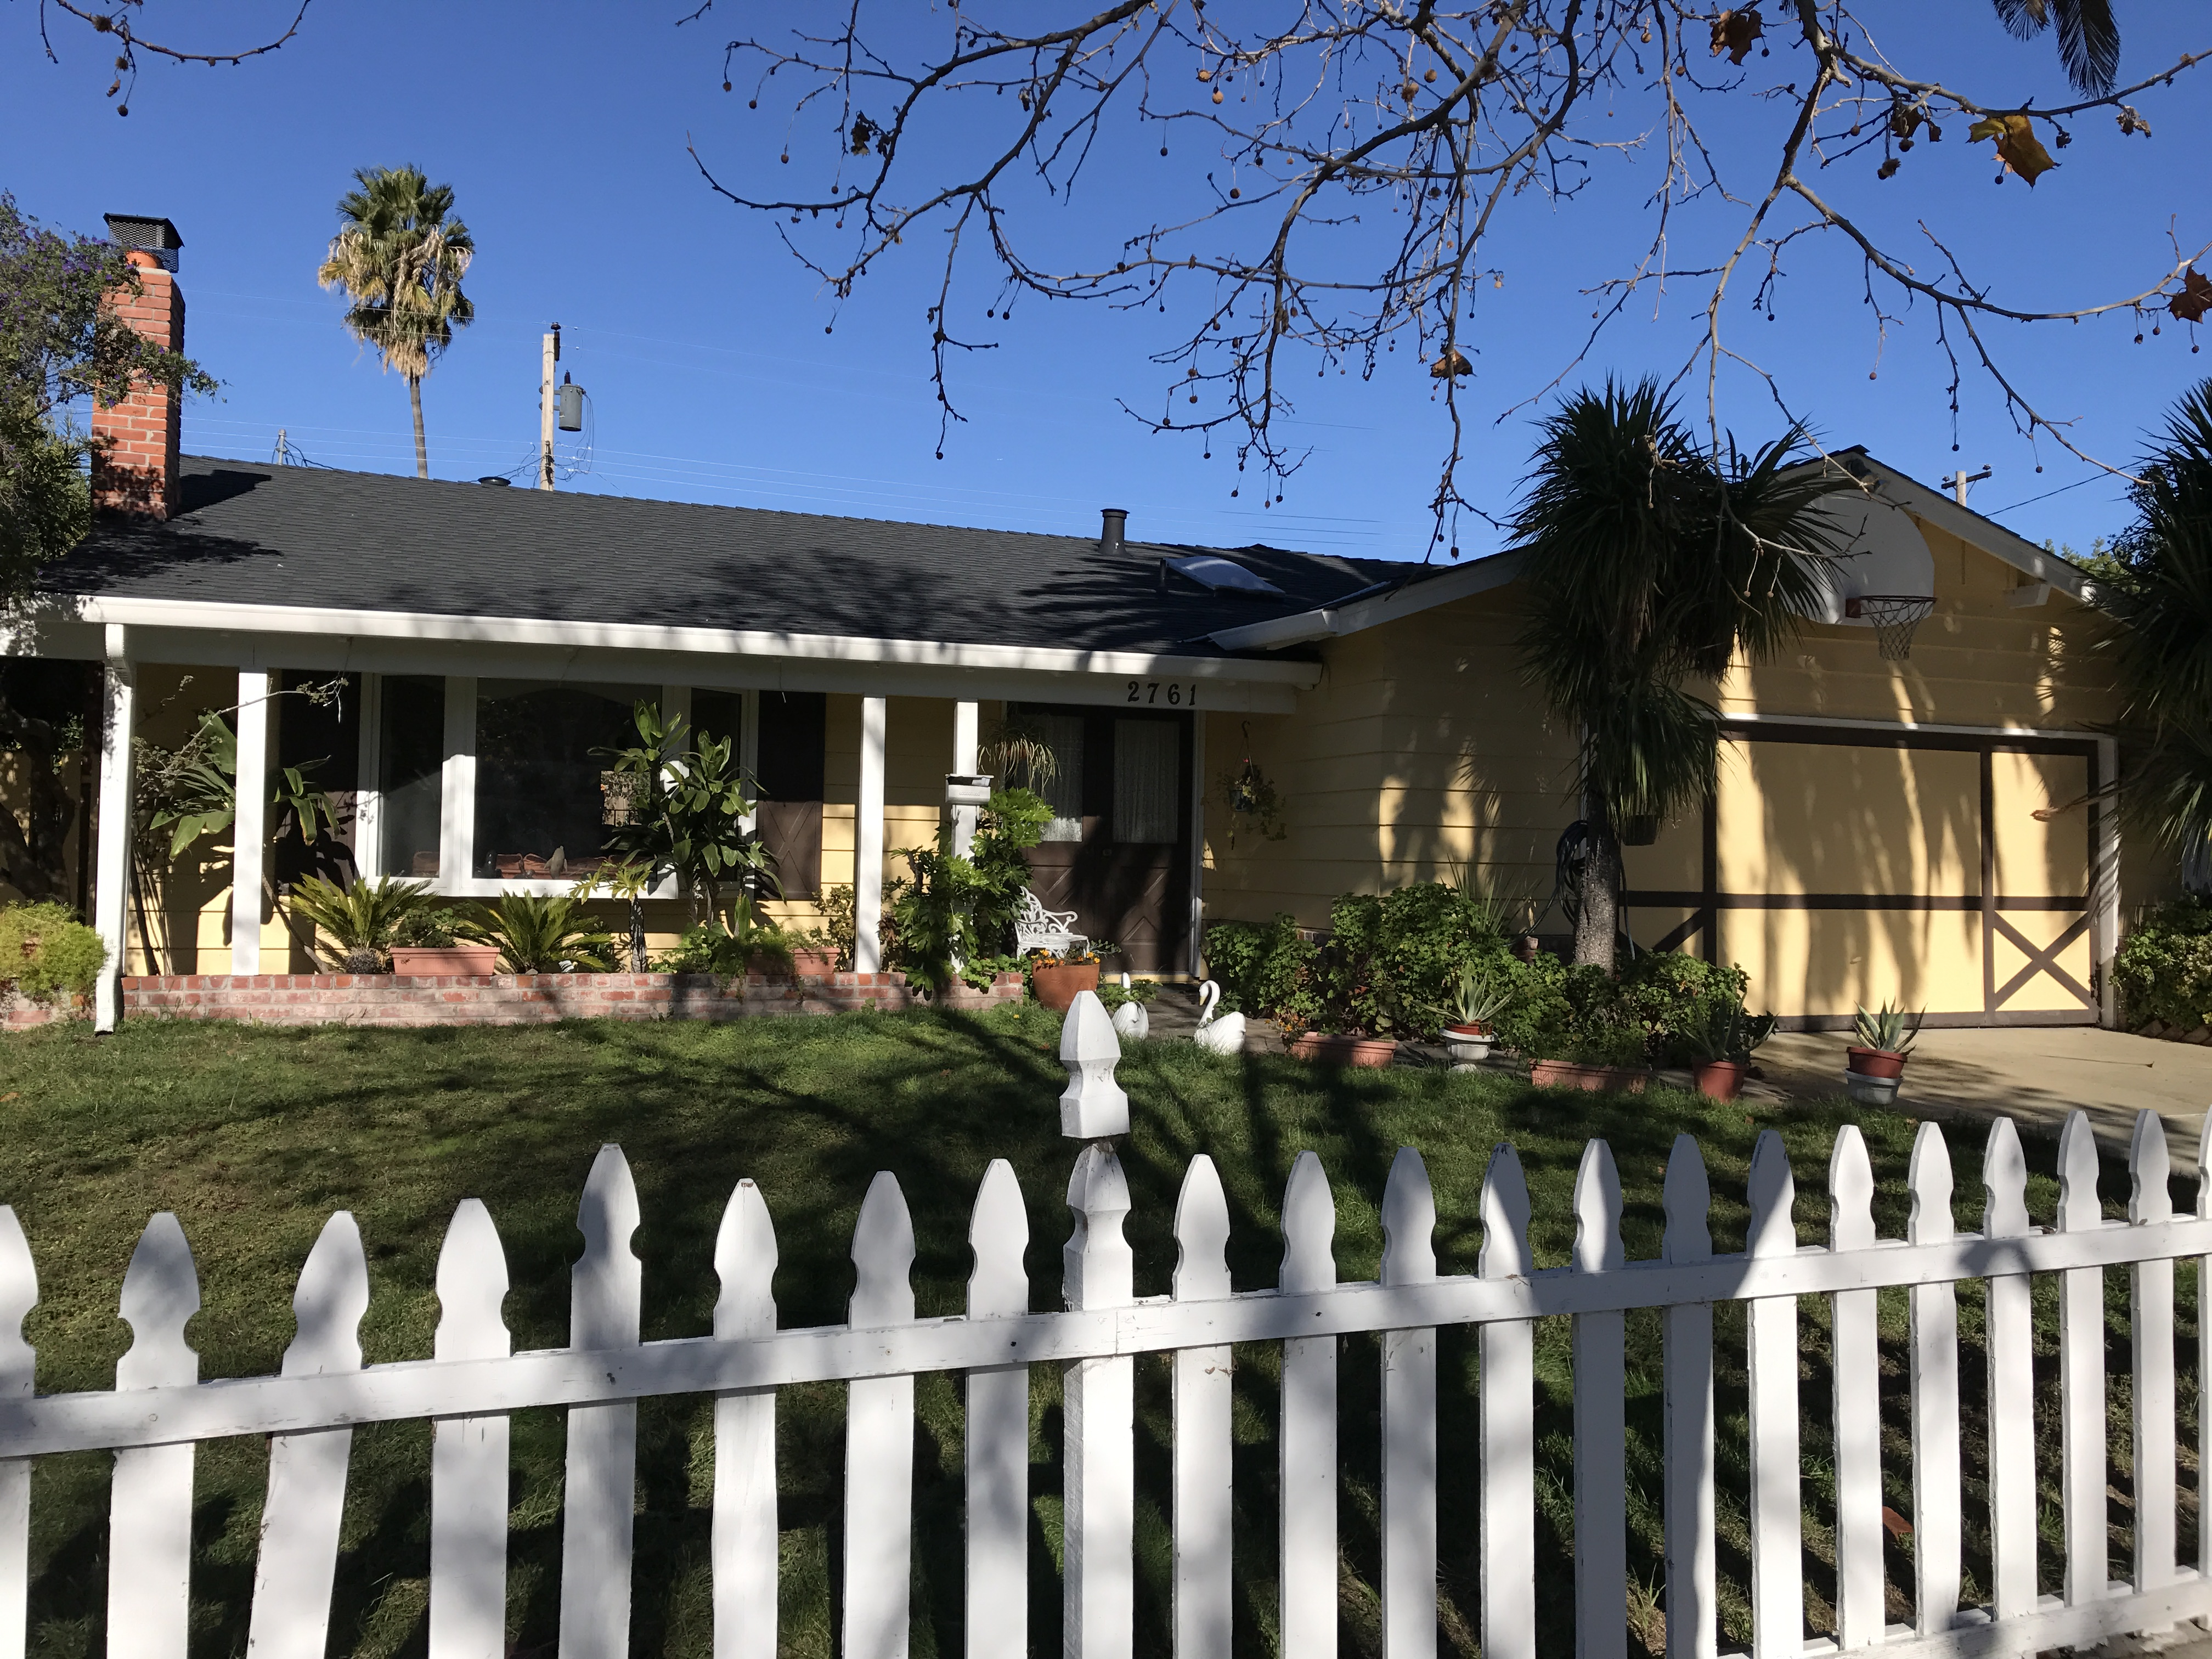 Off-Market Listing! Single Family Home in Excellent Berryessa Neighborhood